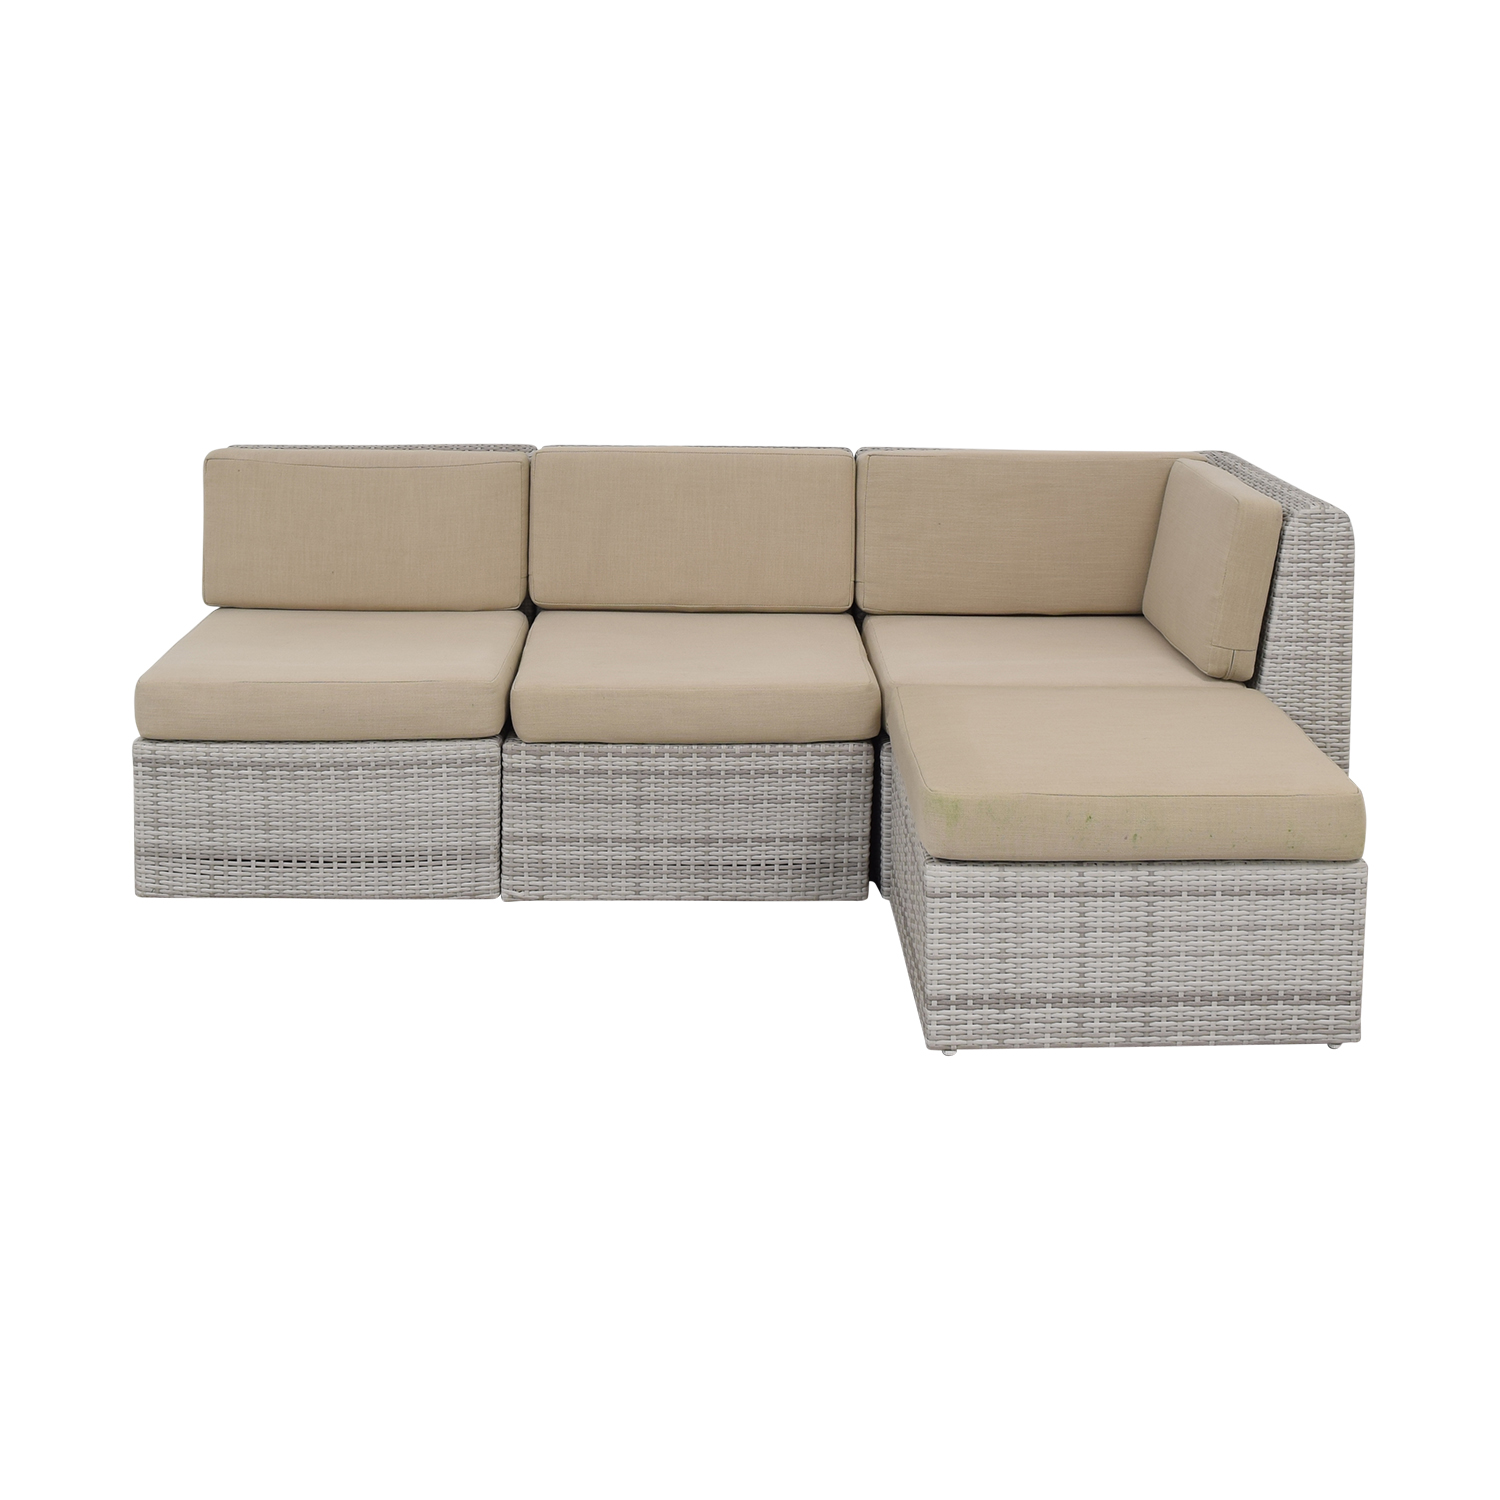 CB2 Ebb Outdoor Sectional Sofa CB2